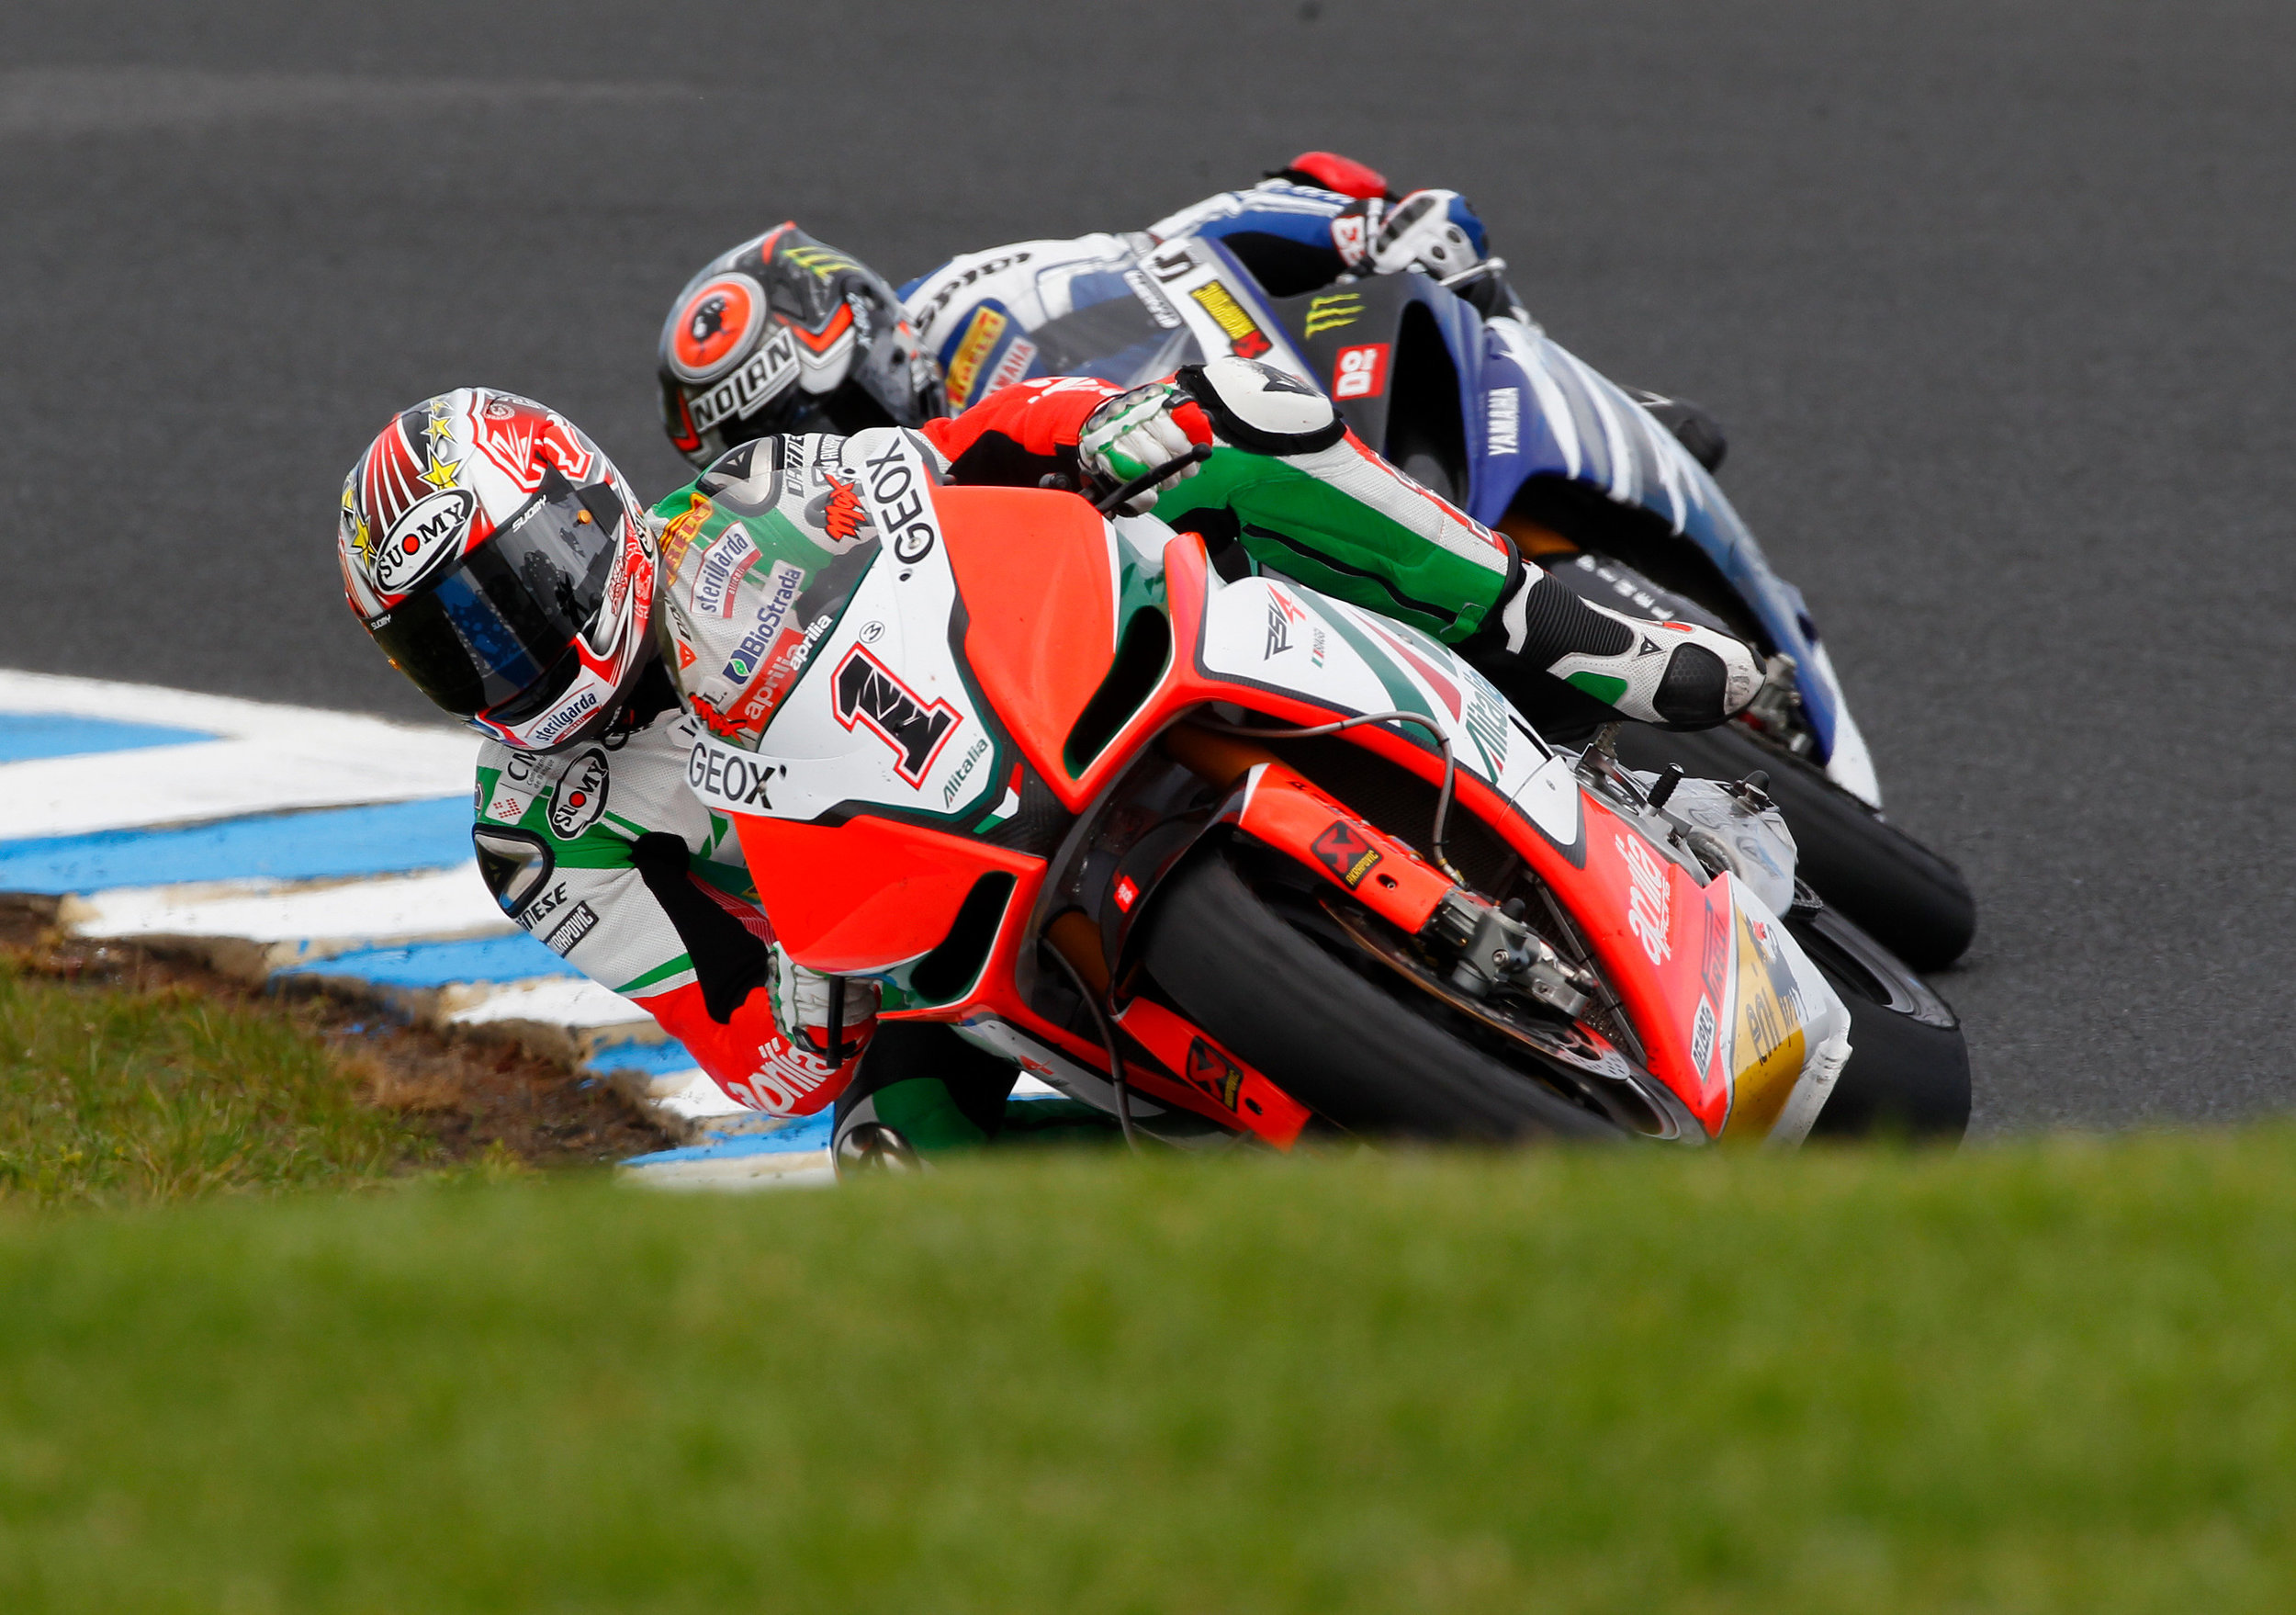 122_1102_02_o+max_biaggi_aprilia_world_superbike_race_2011+.jpg